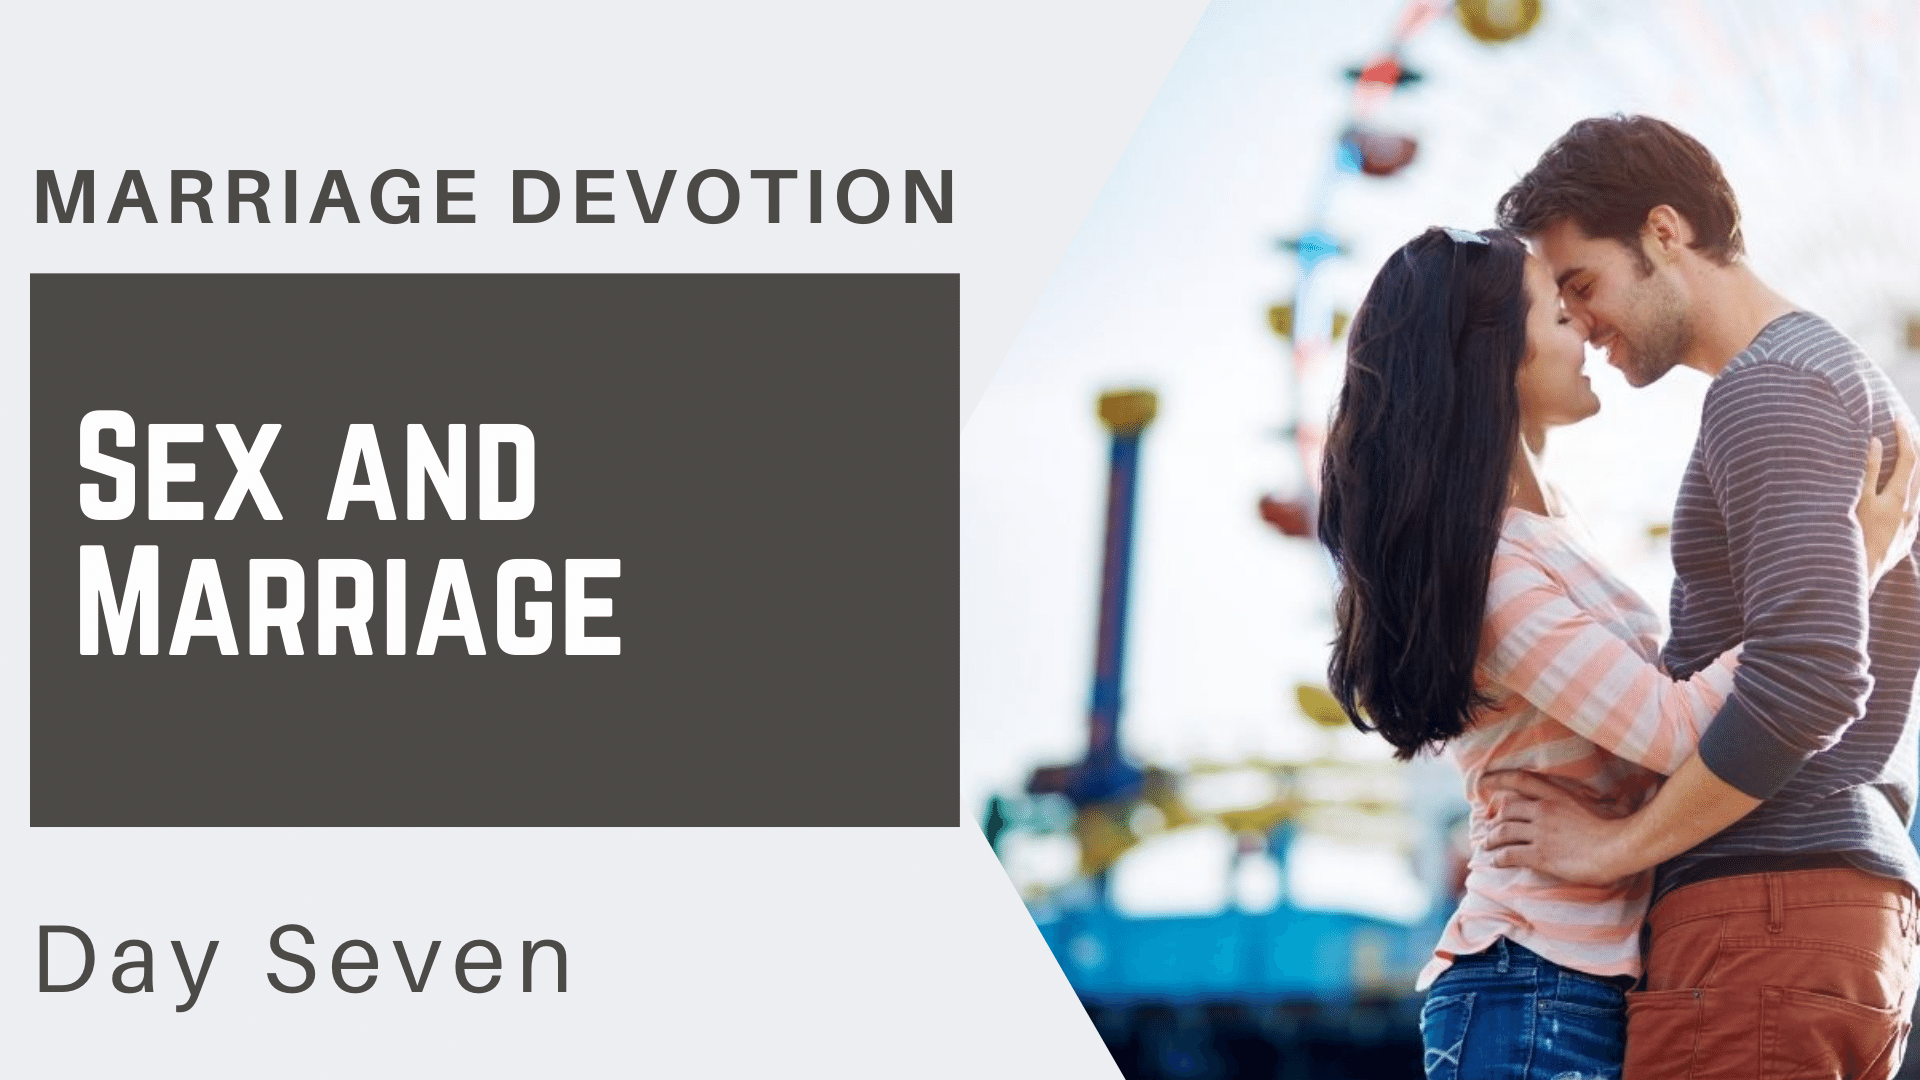 Marriage Devotion Day 7 – Sex and Marriage